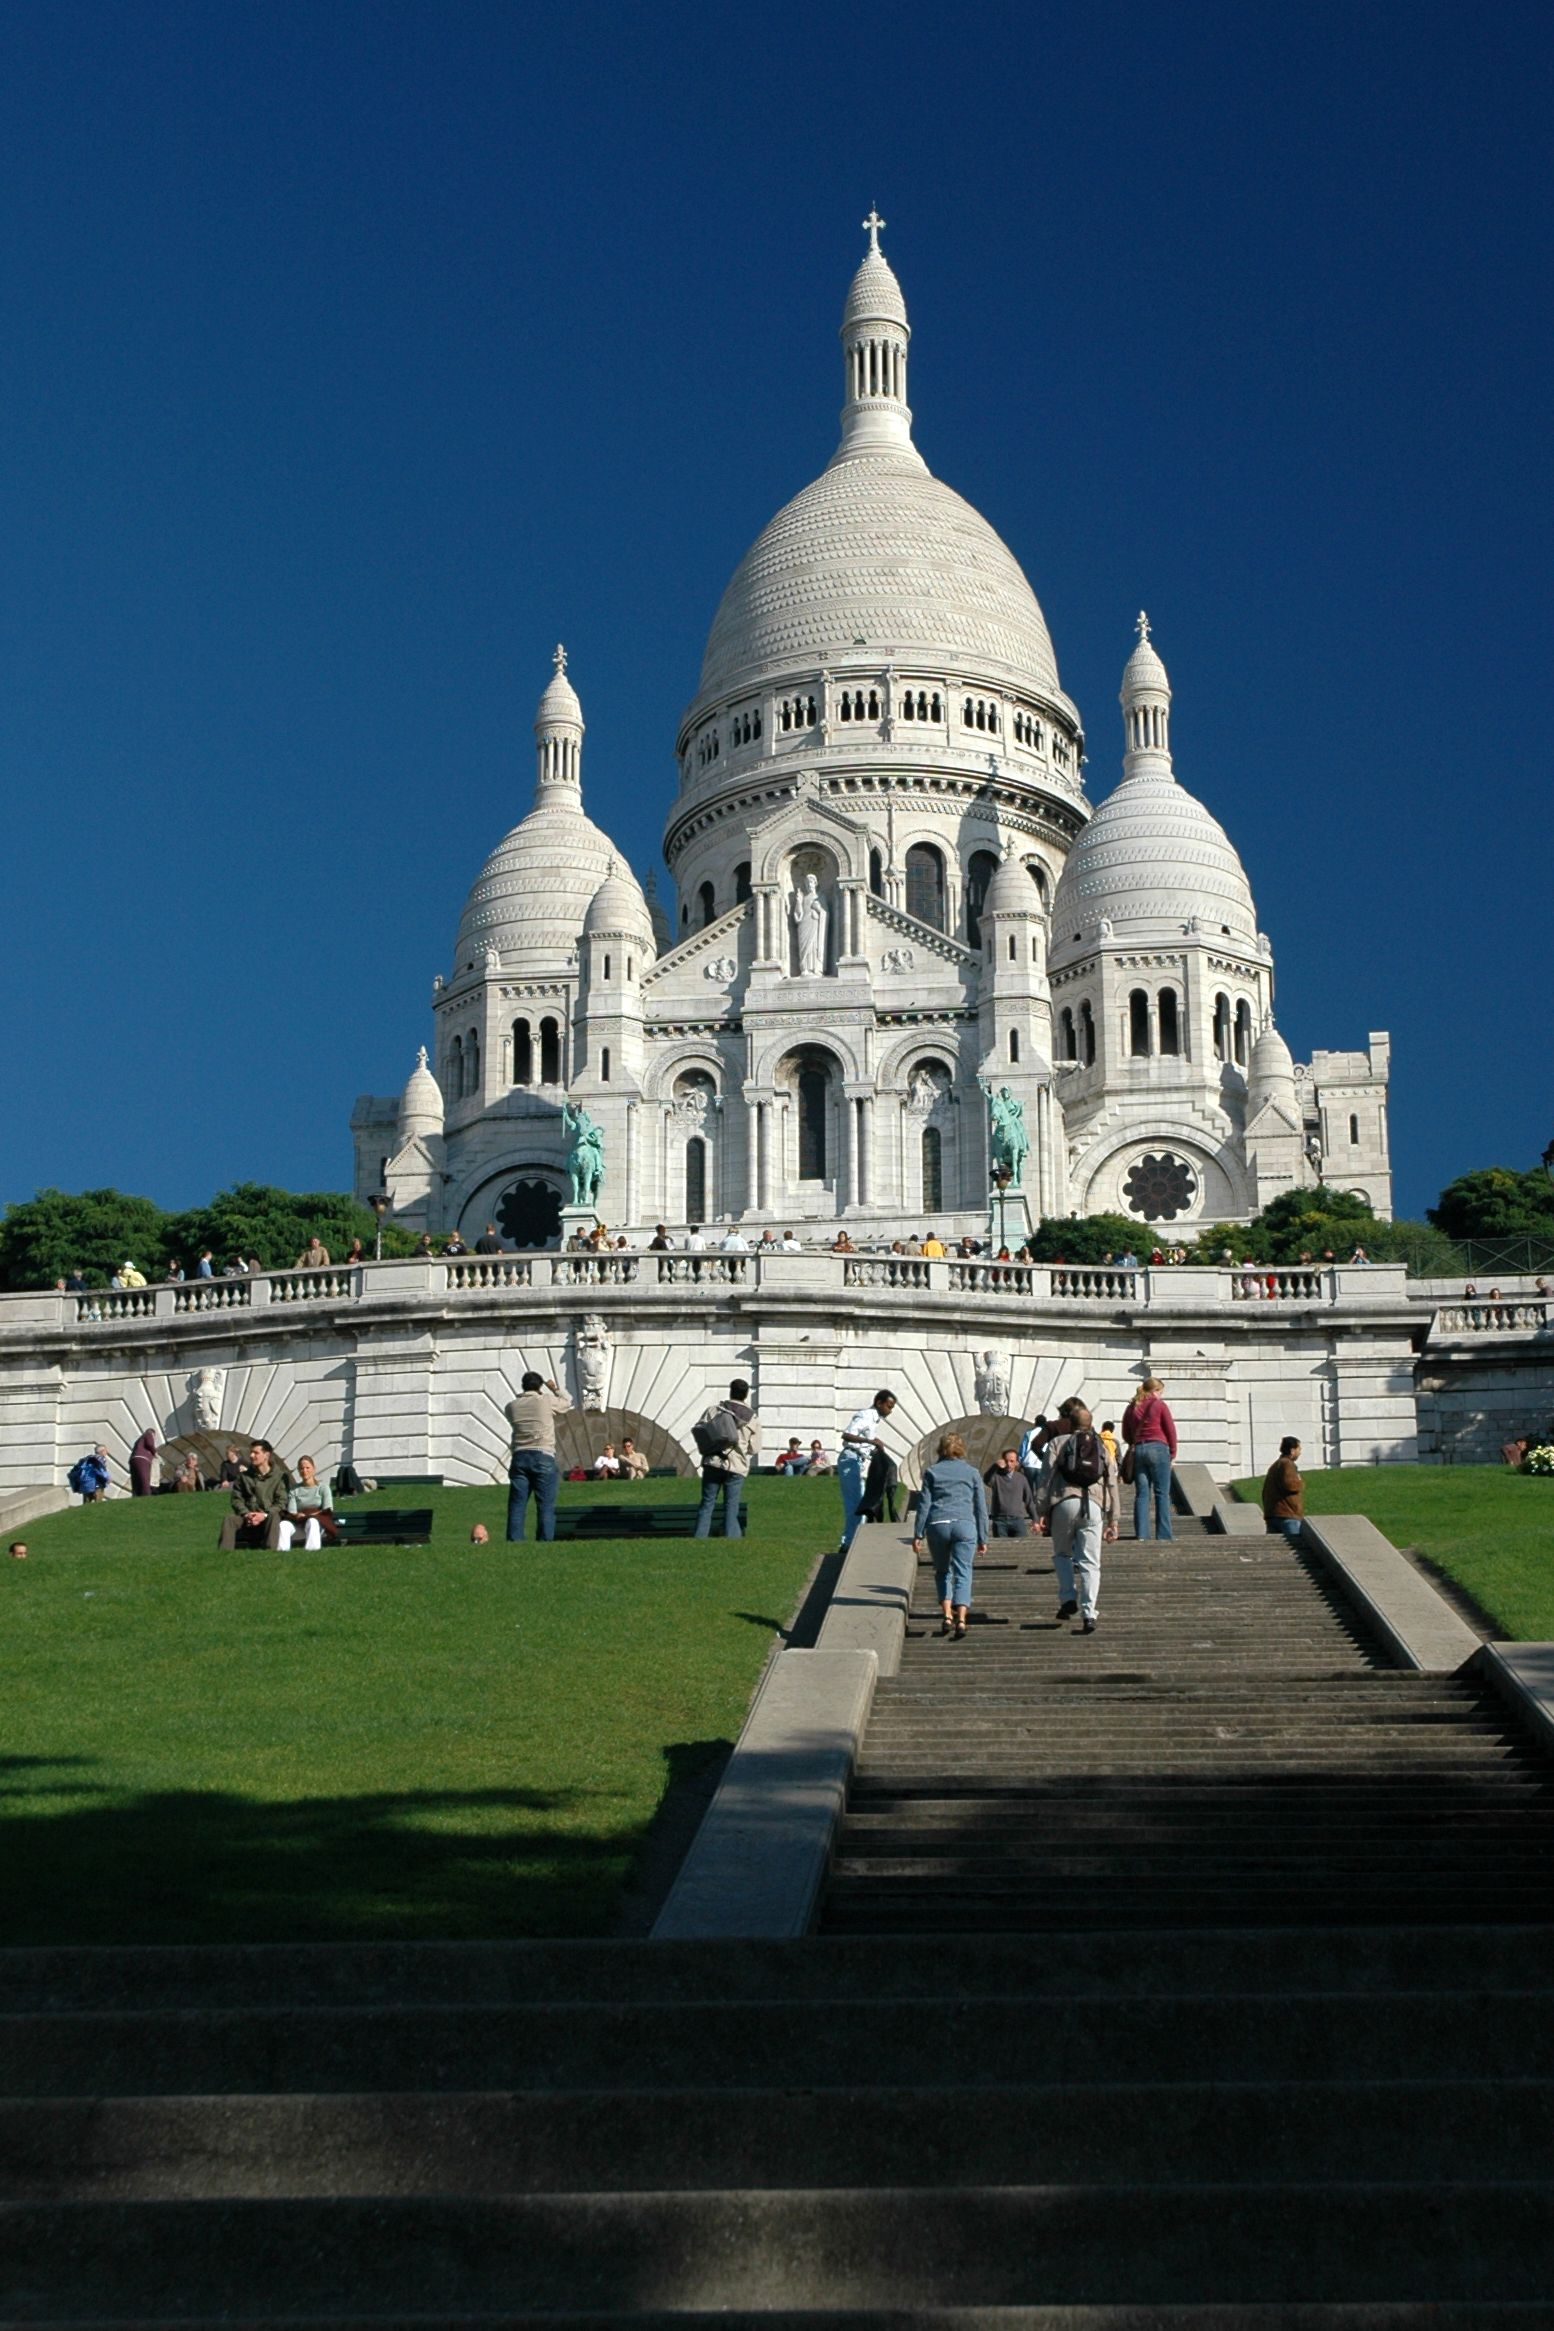 http://upload.wikimedia.org/wikipedia/commons/7/77/SacreCoeur_tb.jpg